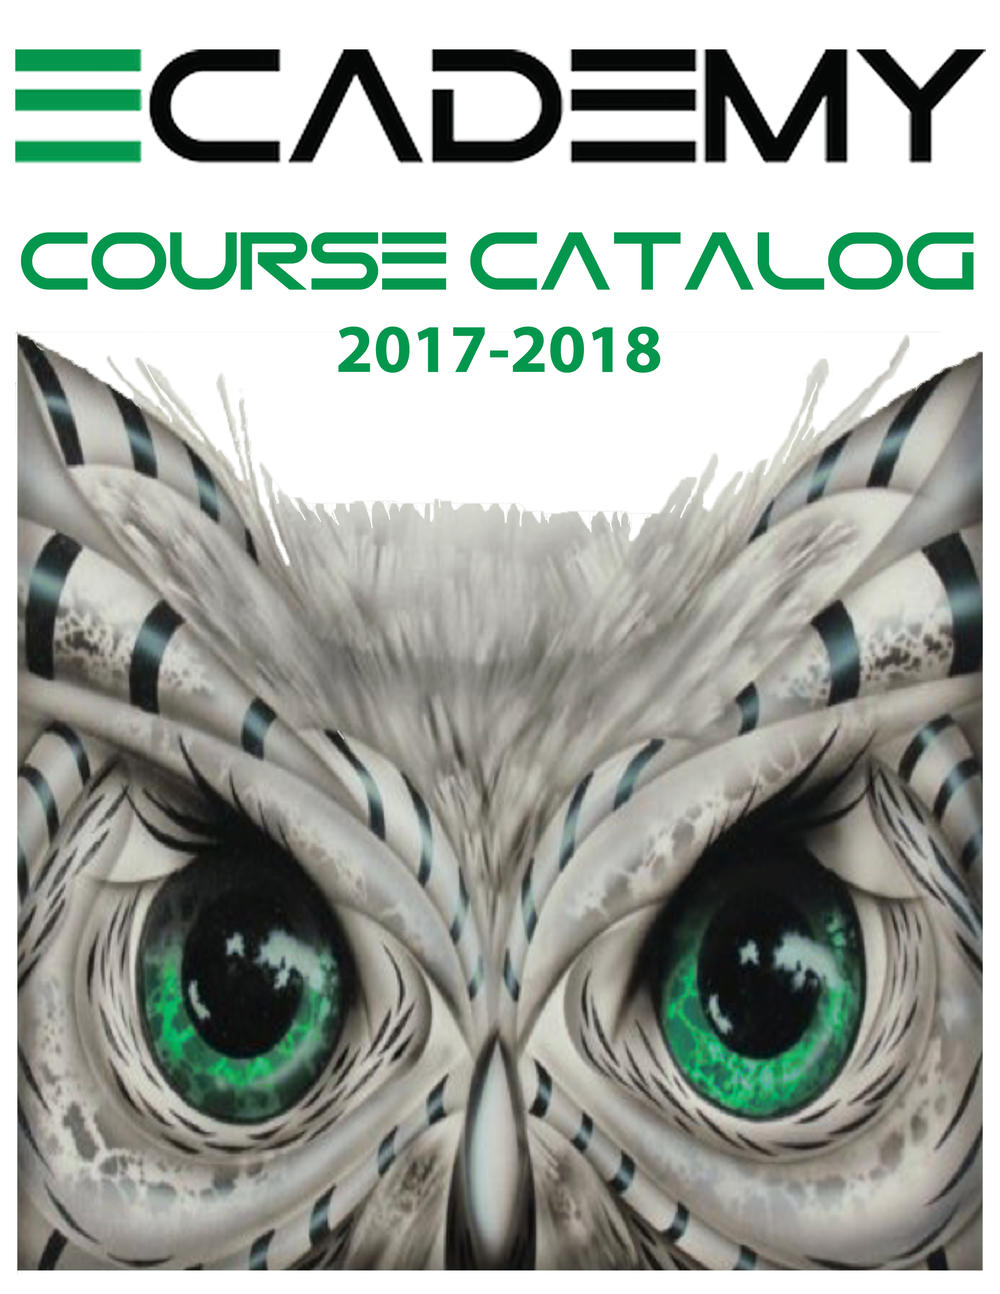 Click here to view the eCADEMY Course Catalog for 2017-2018!